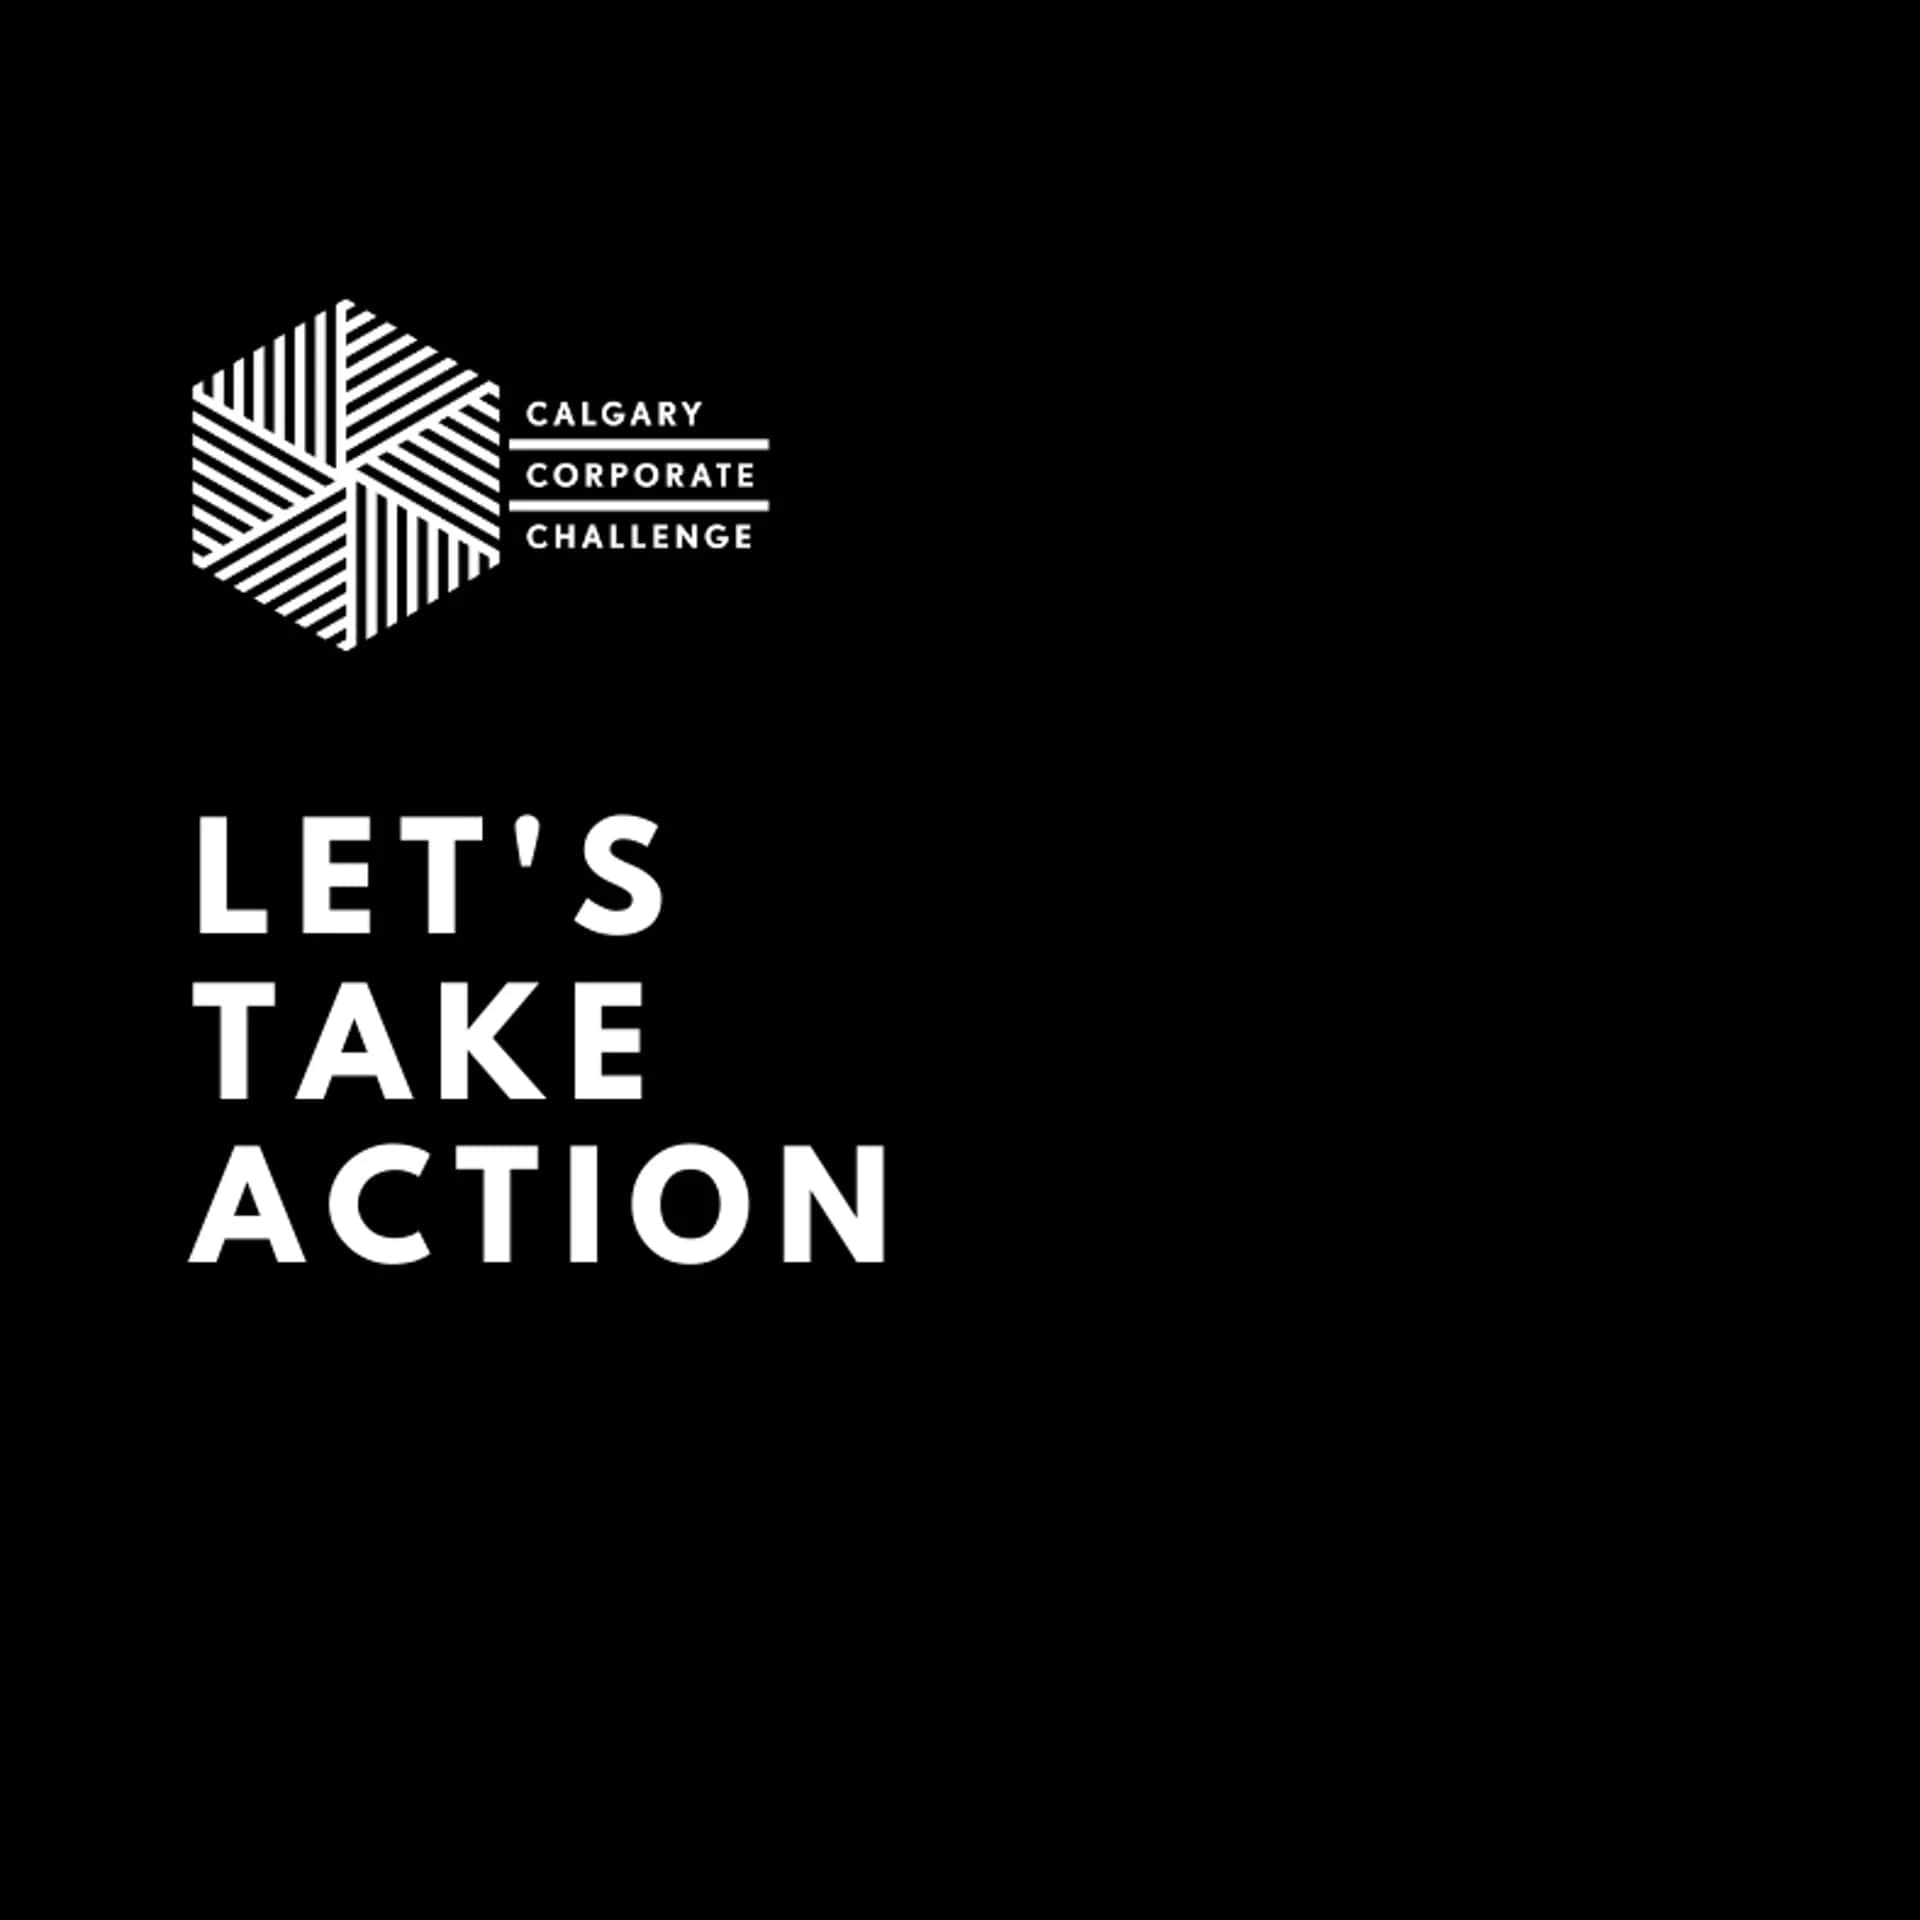 The words 'let's take action' on a black background with the CCC logo in white